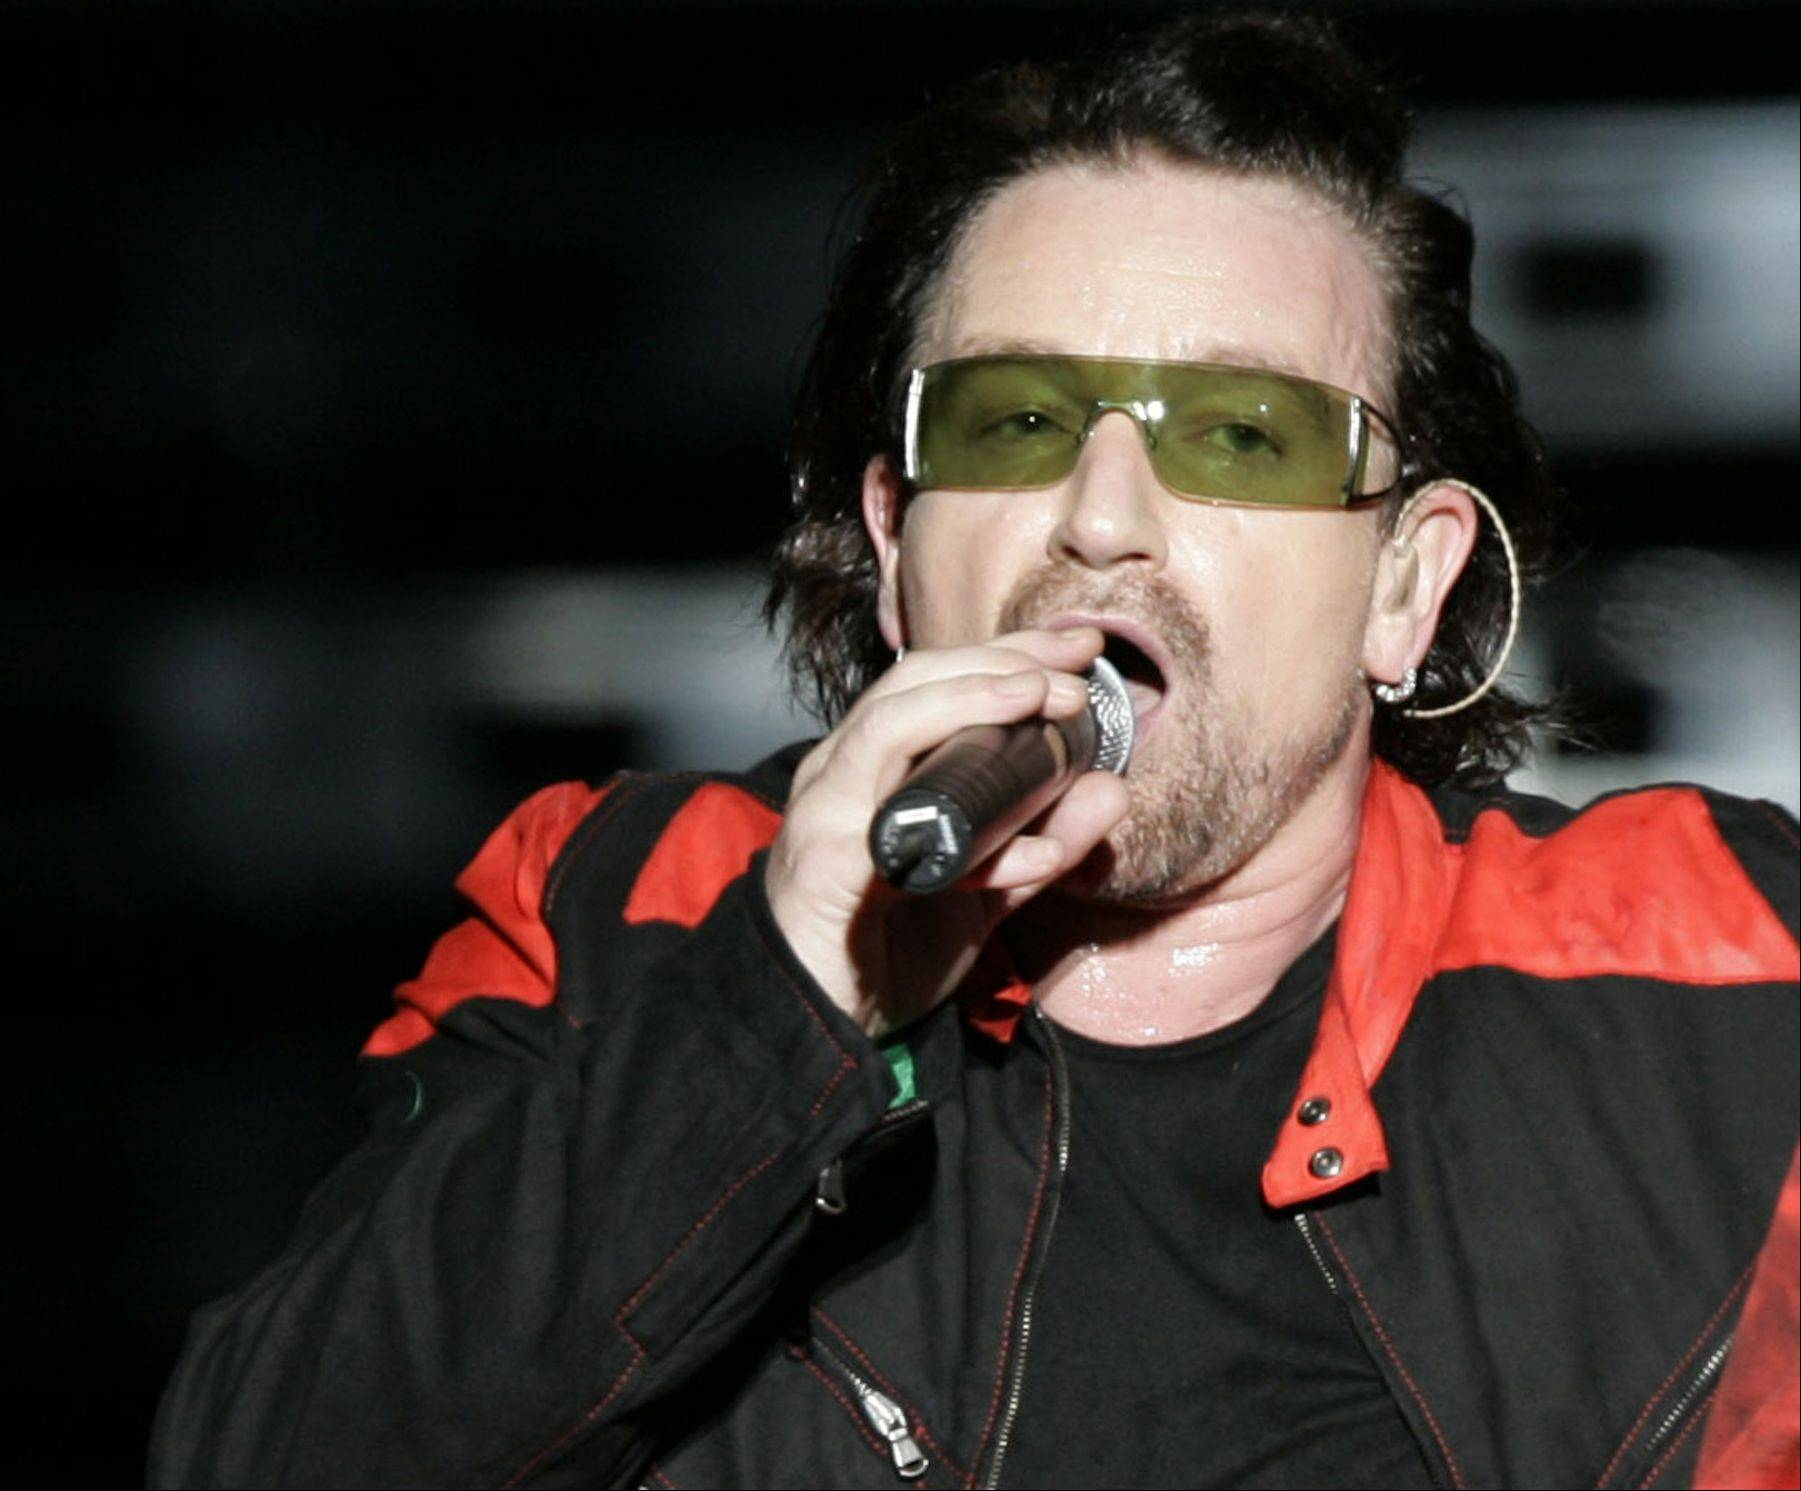 U2's lead singer Bono performs at Morumbi Stadium in Sao Paulo, Brazil Monday, Feb. 20, 2006. Bono, who praised Brazil's anti-AIDS campaign, received a kit containing condoms and information about how to prevent the spread of AIDS during a dinner Wednesday, Feb. 22. 2006, with Culture Minister and pop star Gilberto Gil in Salvador, a coastal city some 1,200 kilometers (750 miles) northeast of Rio de Janeiro, the Health Ministry said.